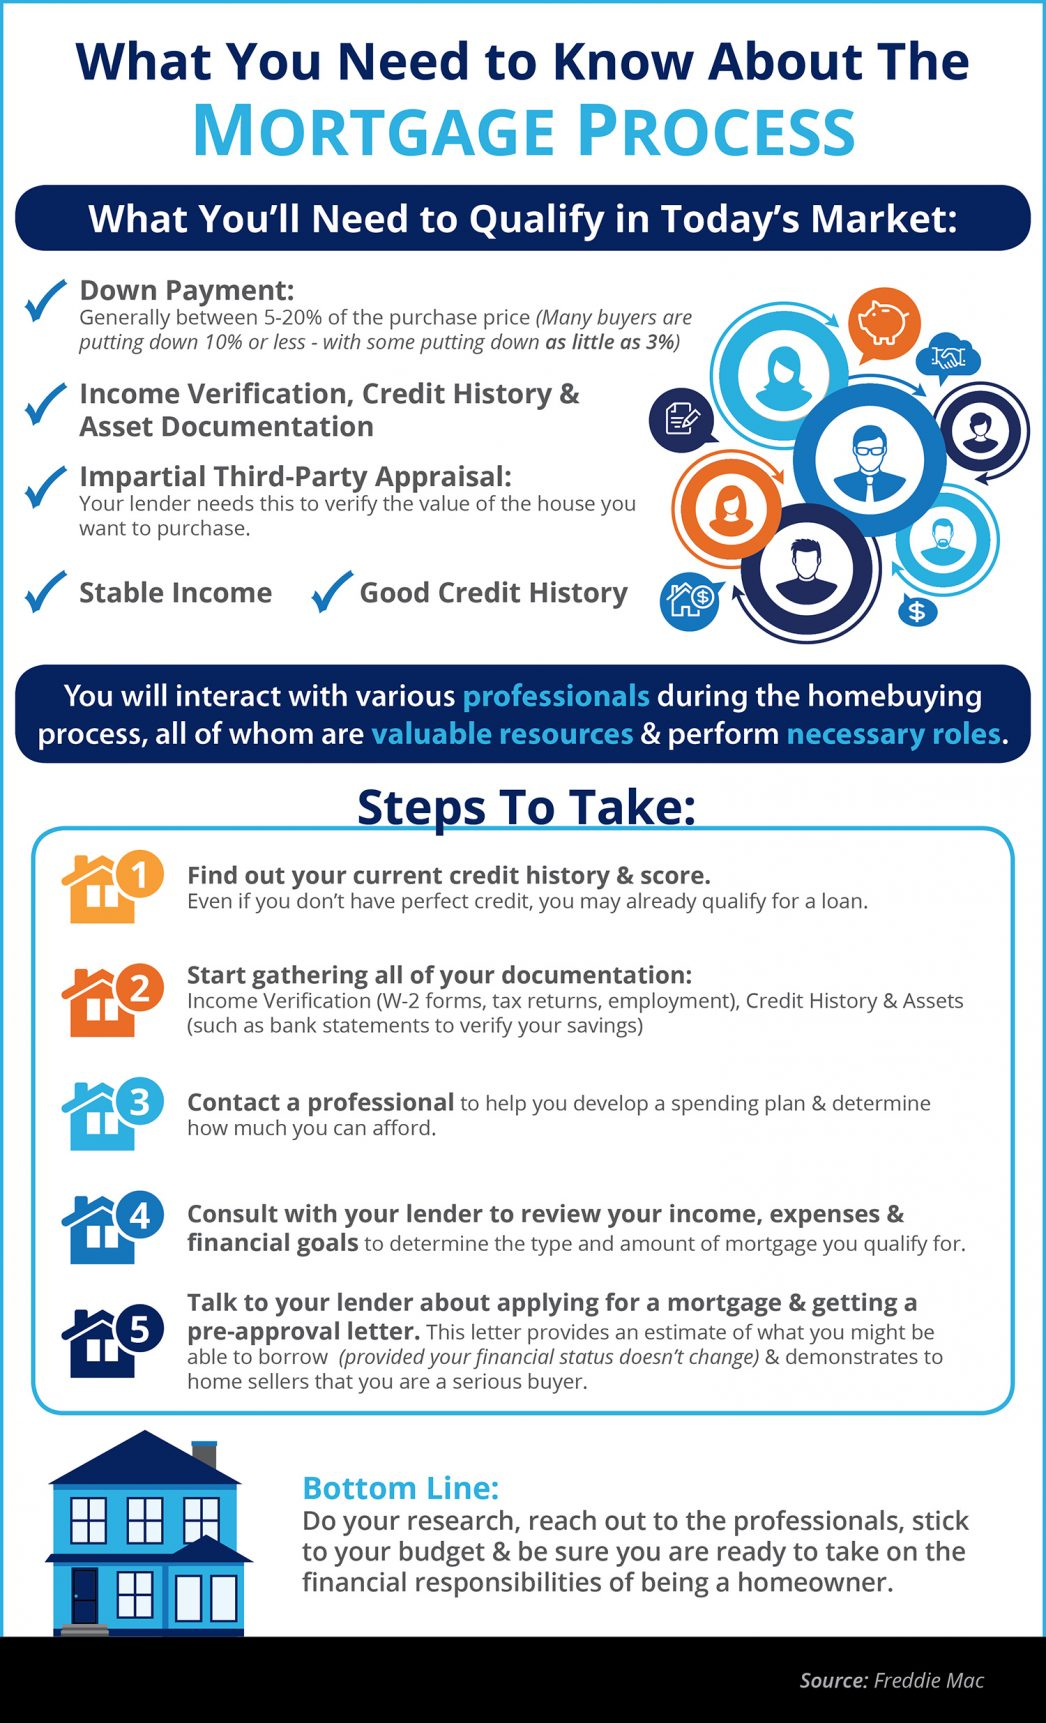 things you need to know about the mortgage process